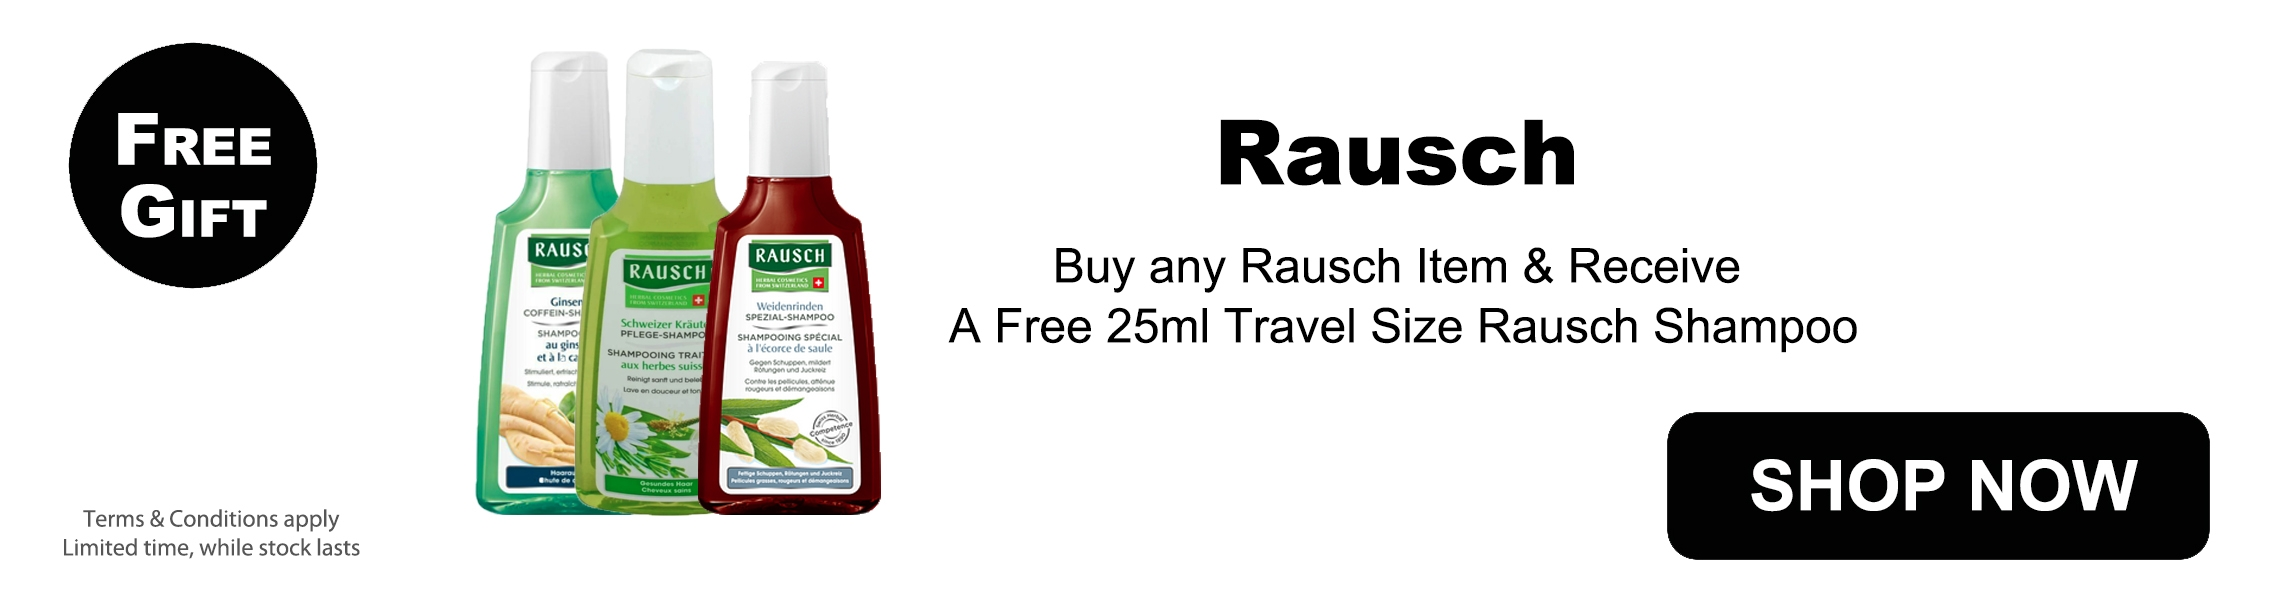 Free Gift with any Rausch purchase - Best Shampoo